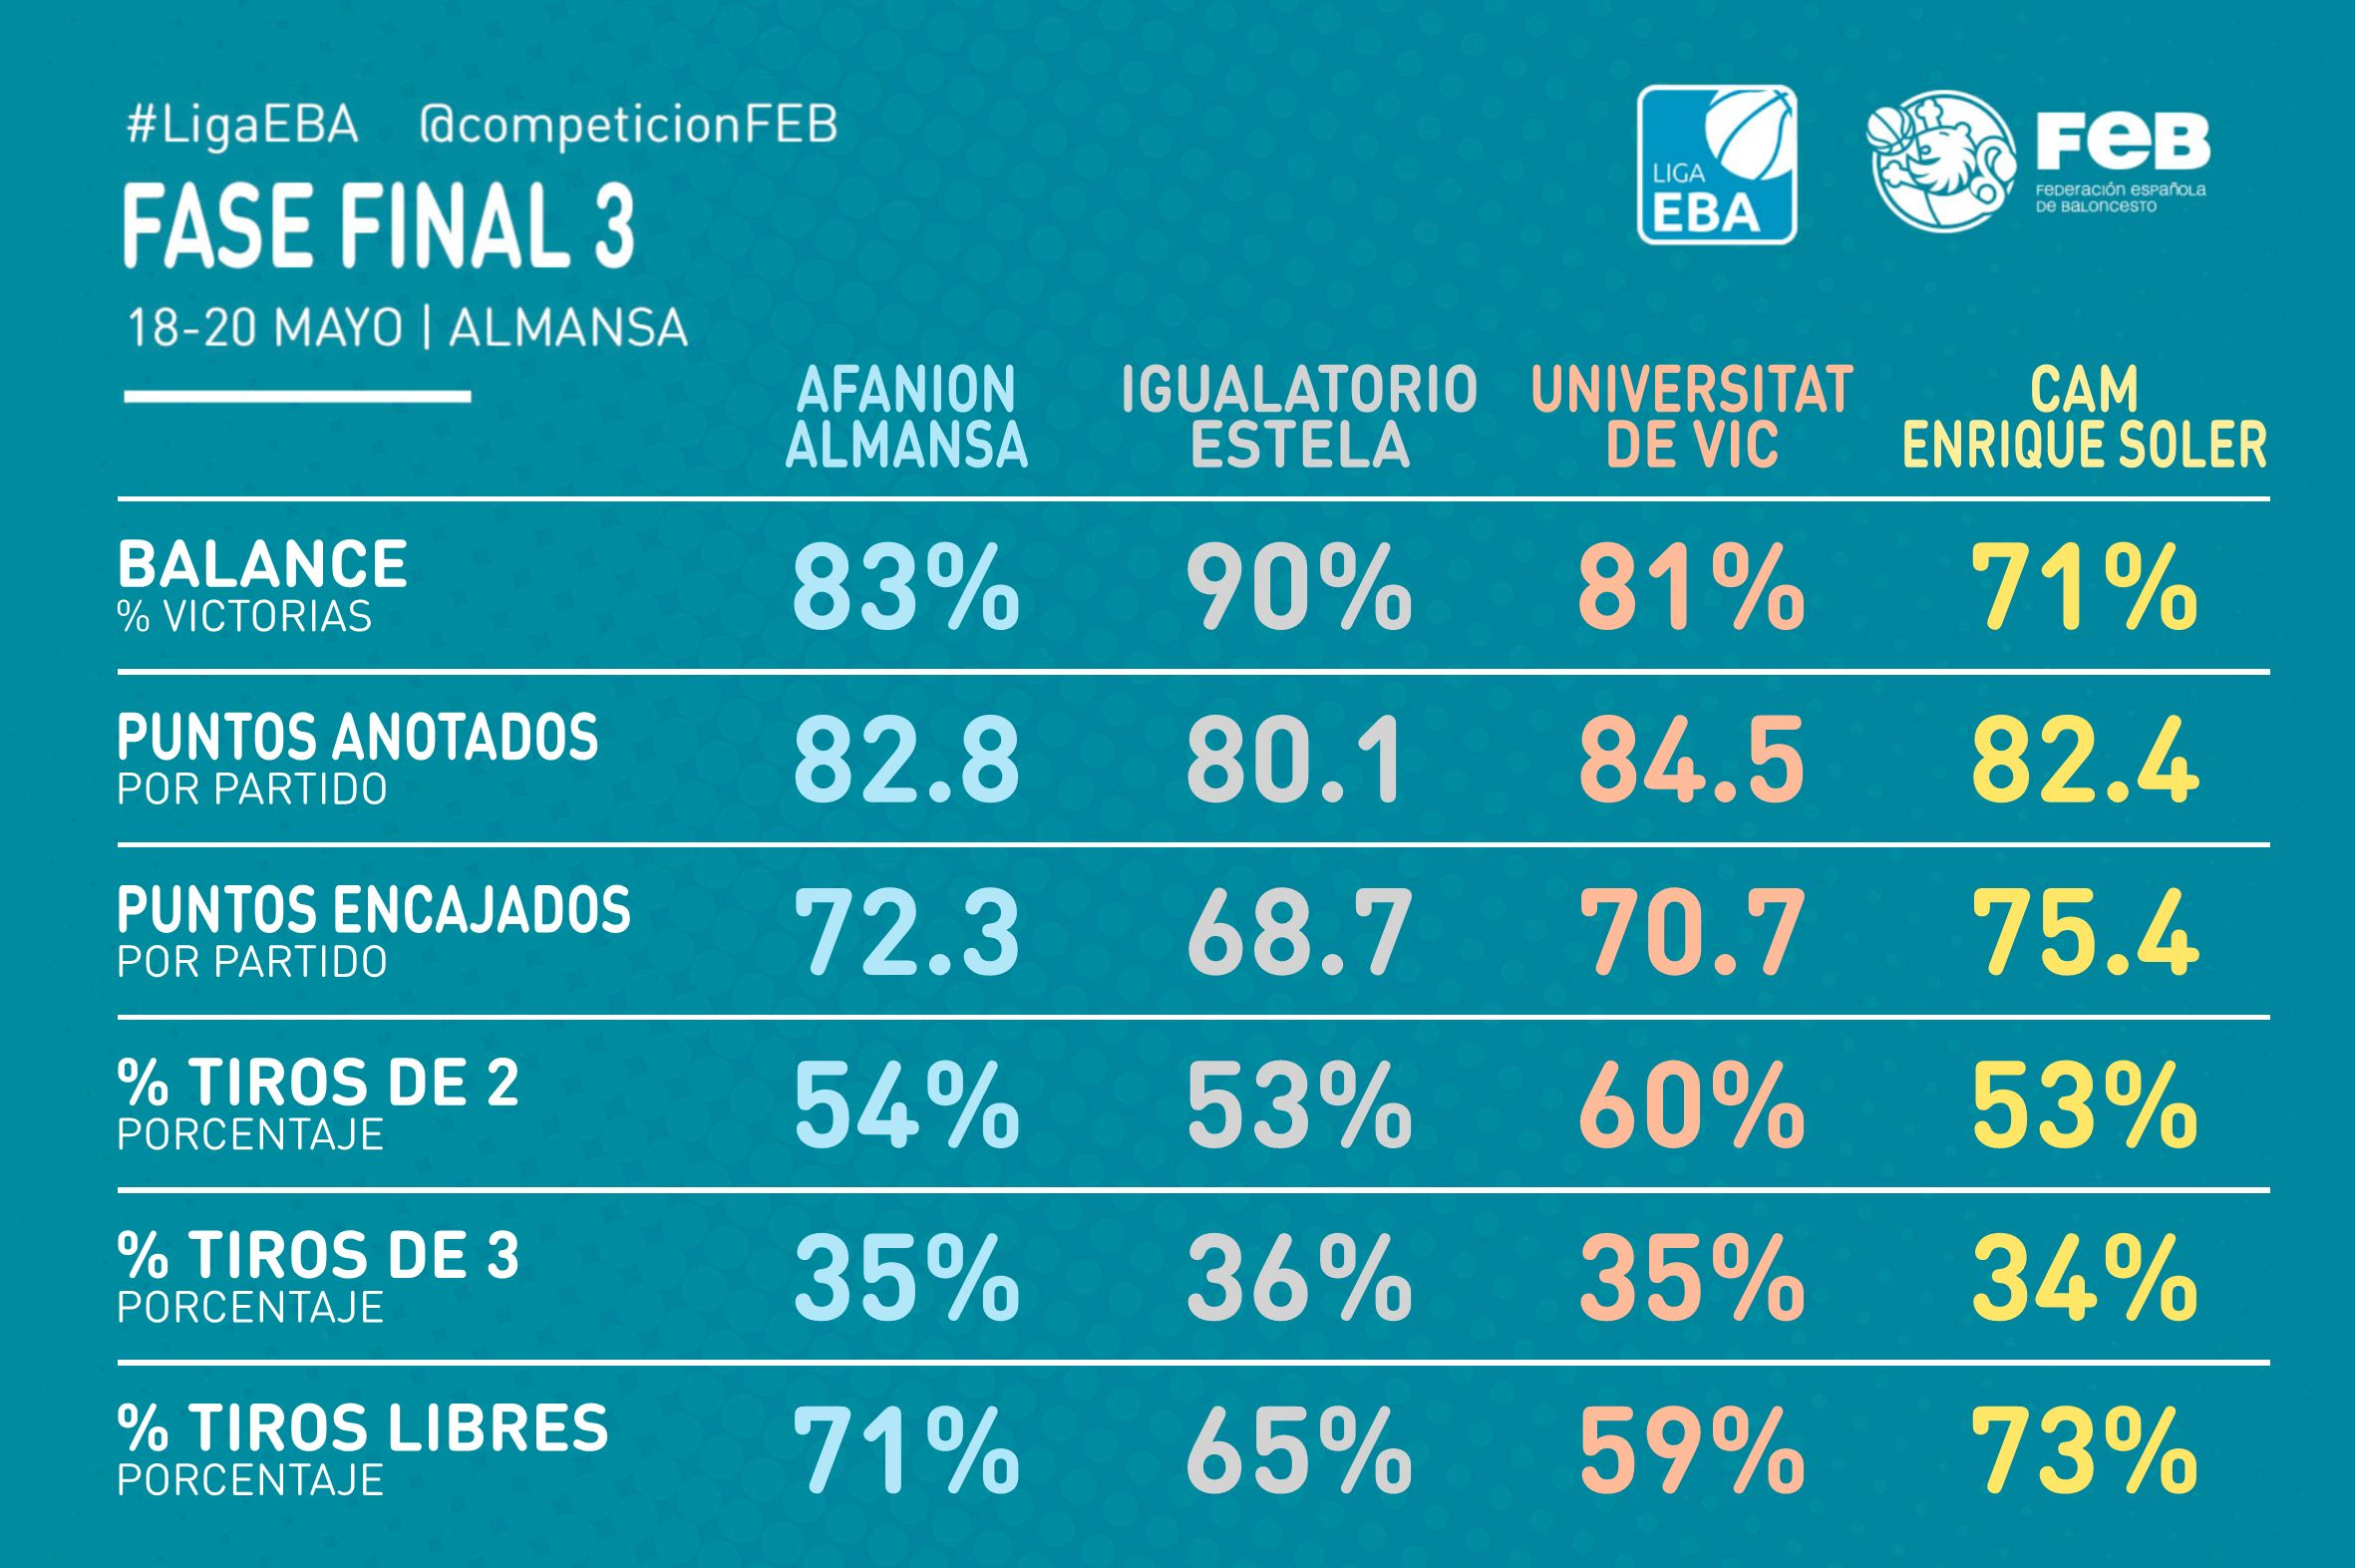 Fase Final Almansa